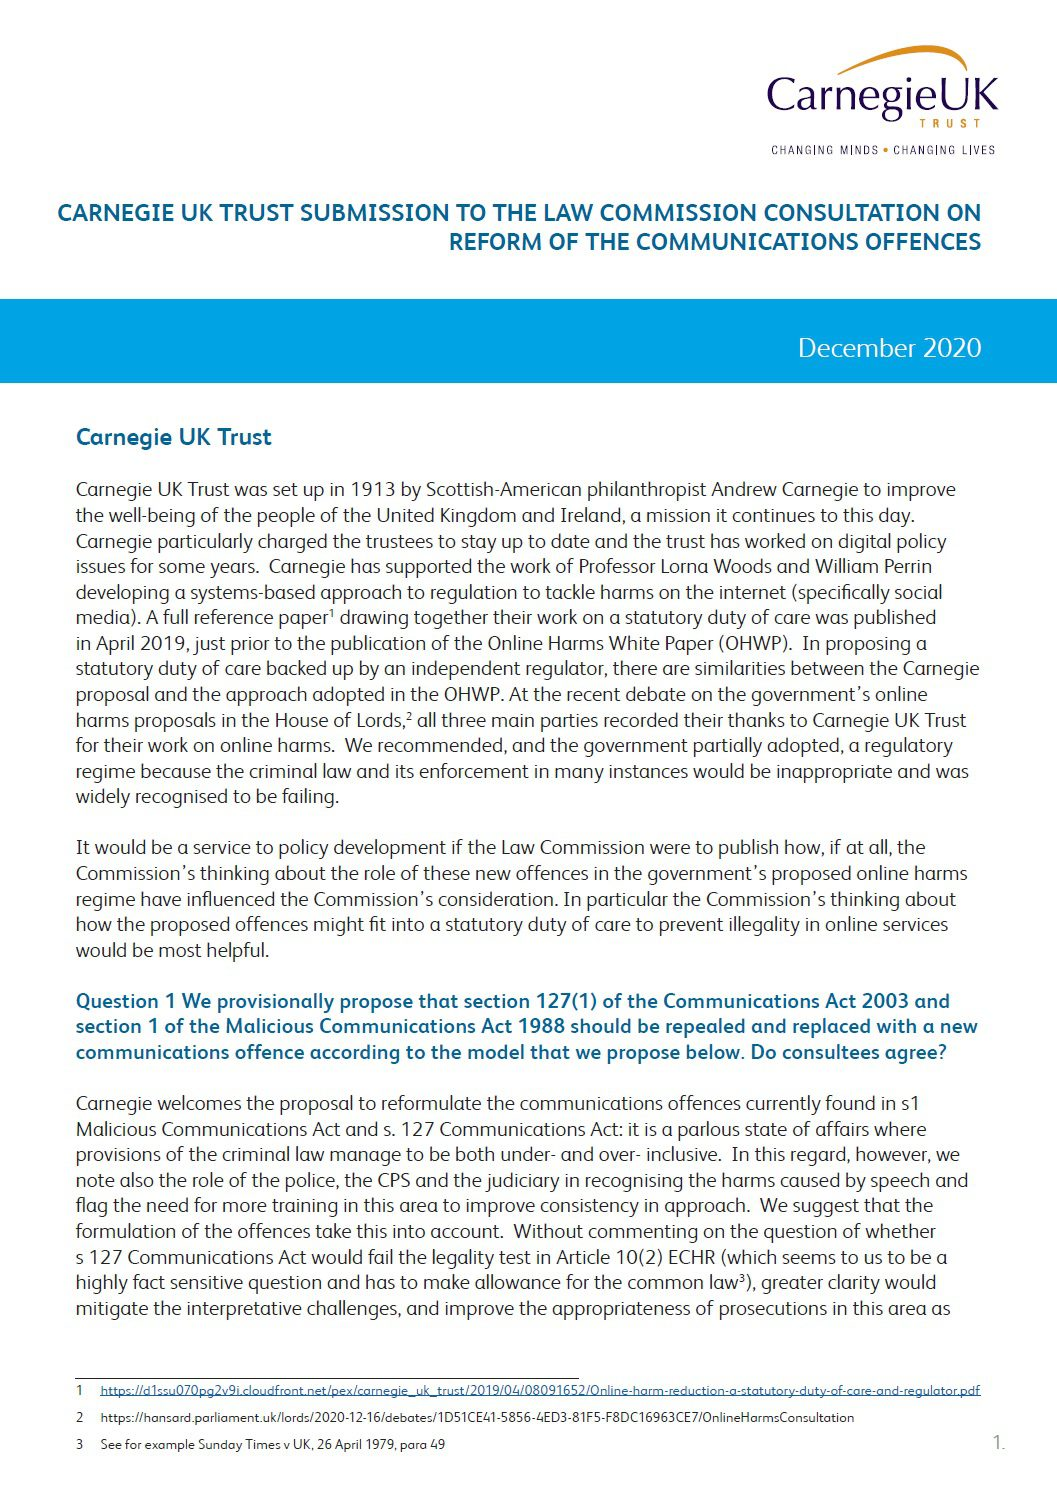 Submission to the Law Commission consultation on Reform of the Communications Offences